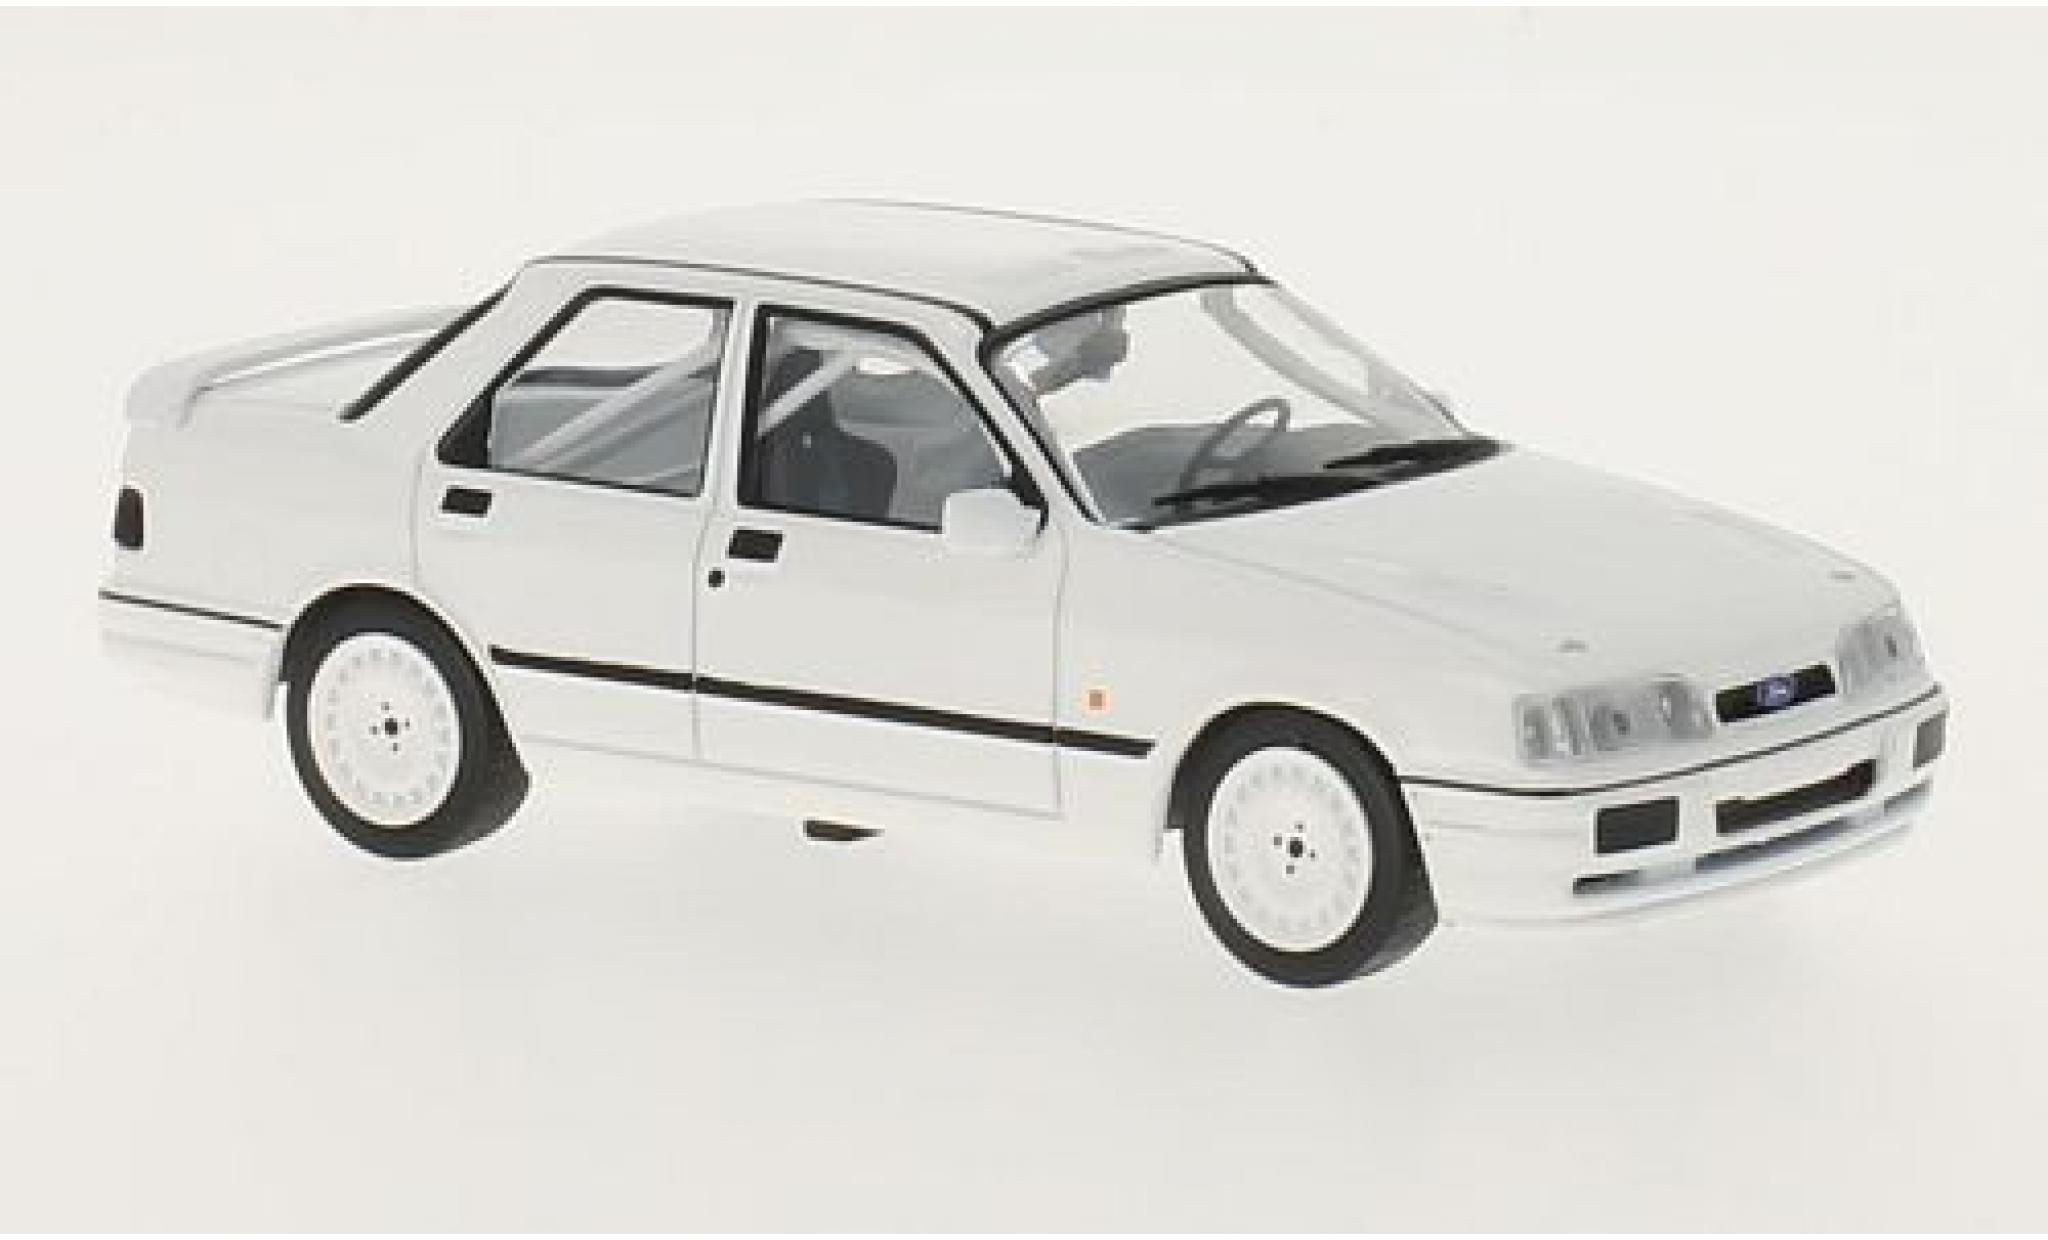 Ford Sierra 1/43 IXO Cosworth 4X4 matt-blanche 1991 Plain Body Version y compris les 4 Ersatzräder